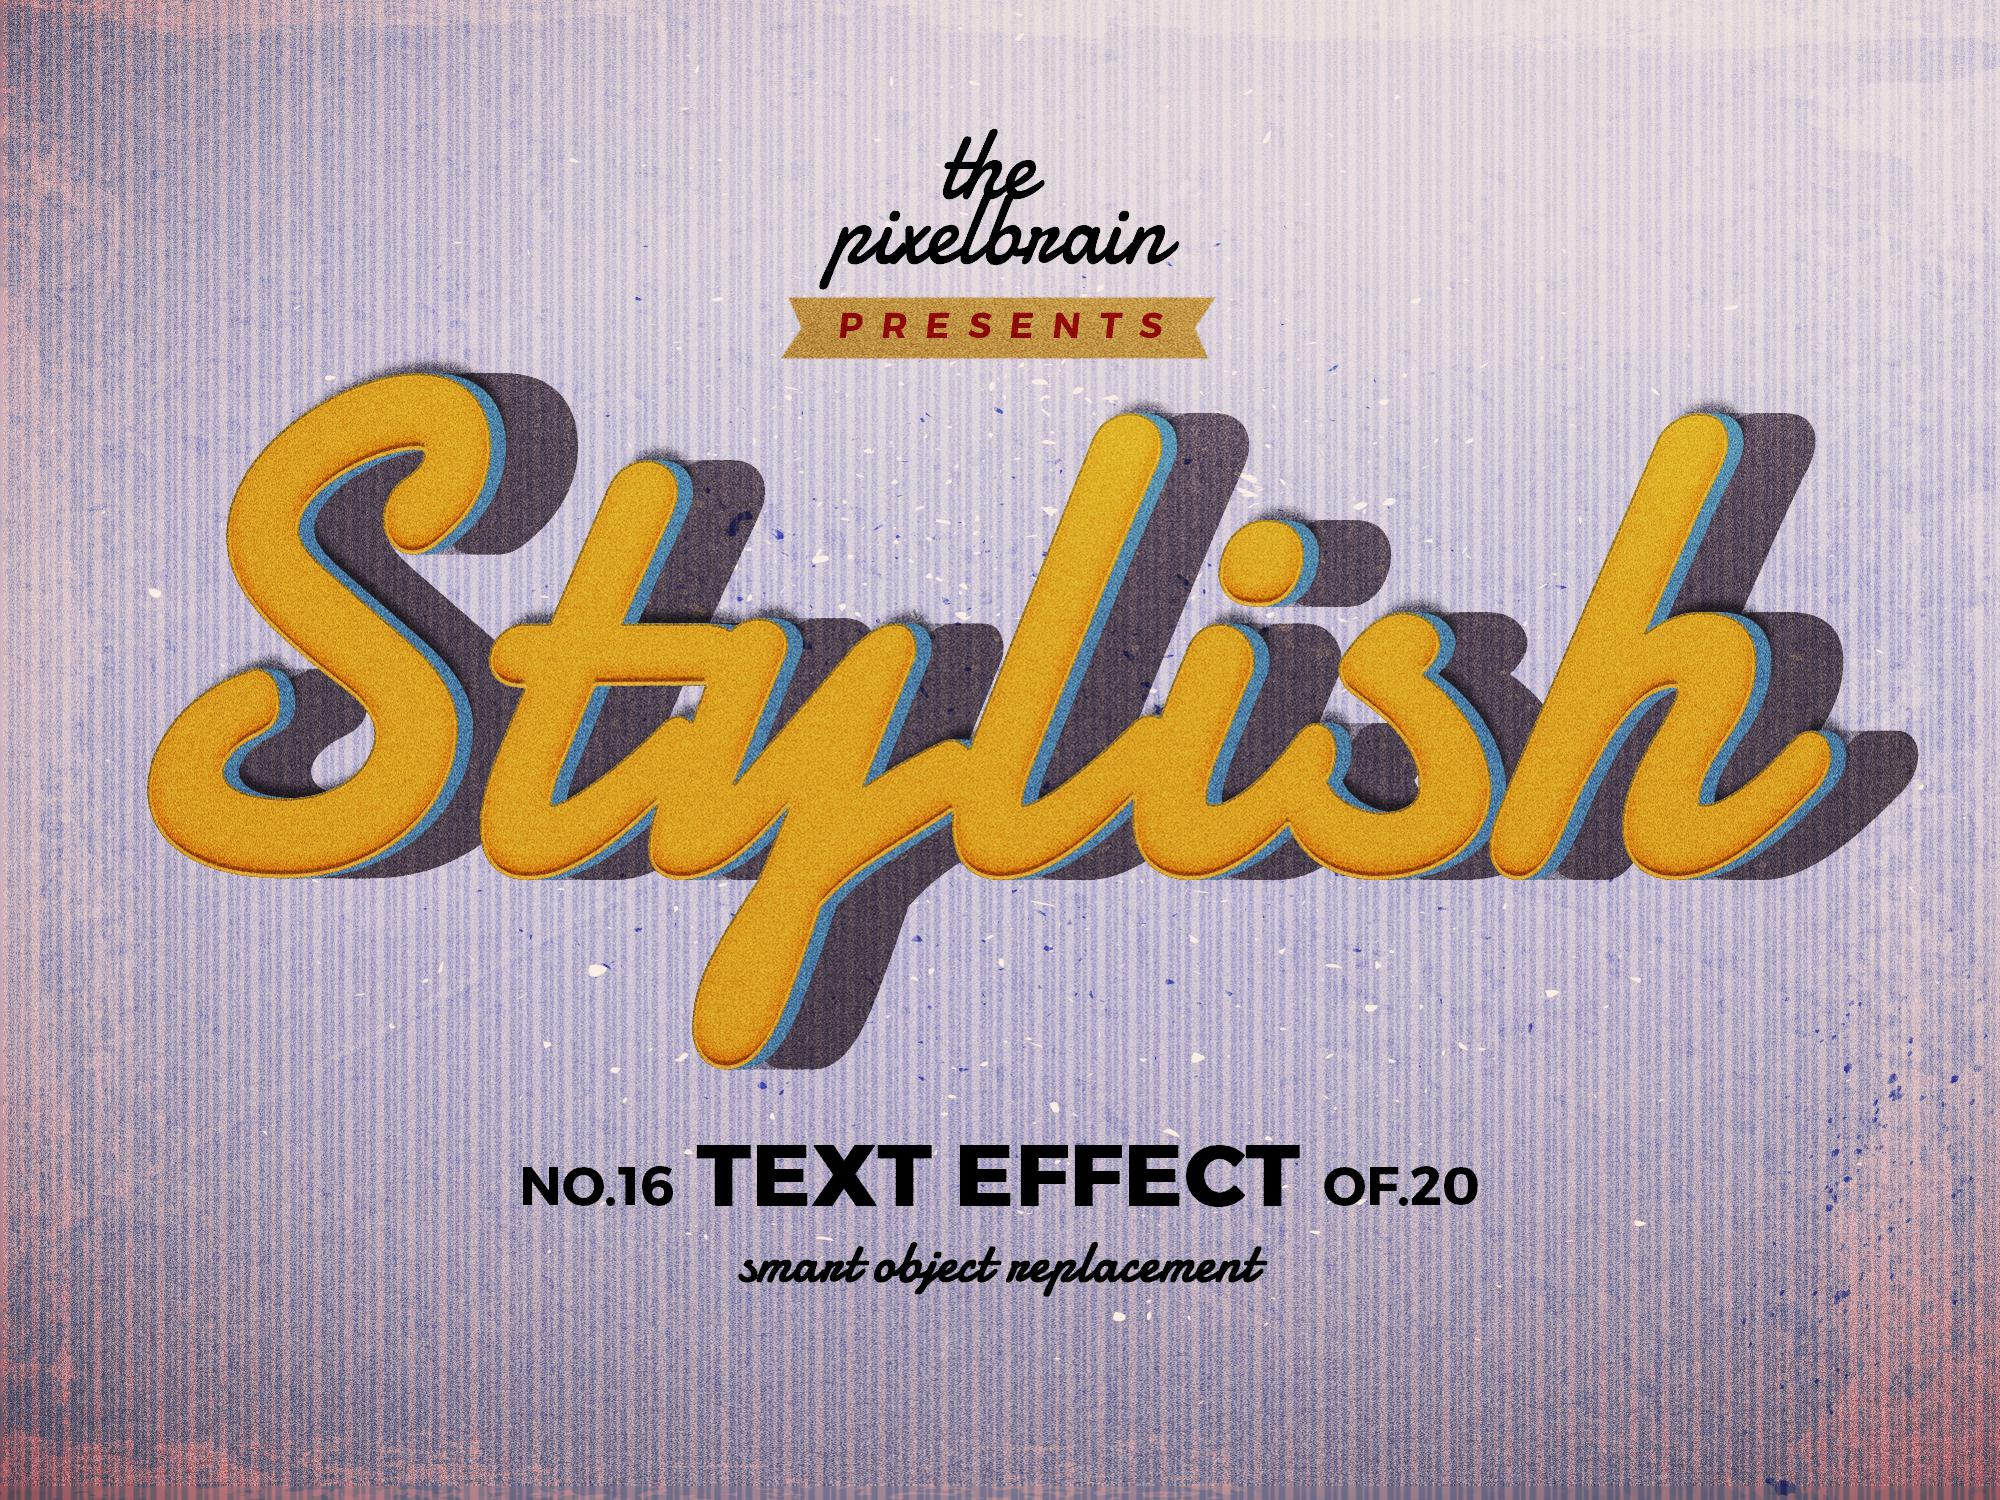 Chia sẻ bộ Retro Vintage Text Effects 6